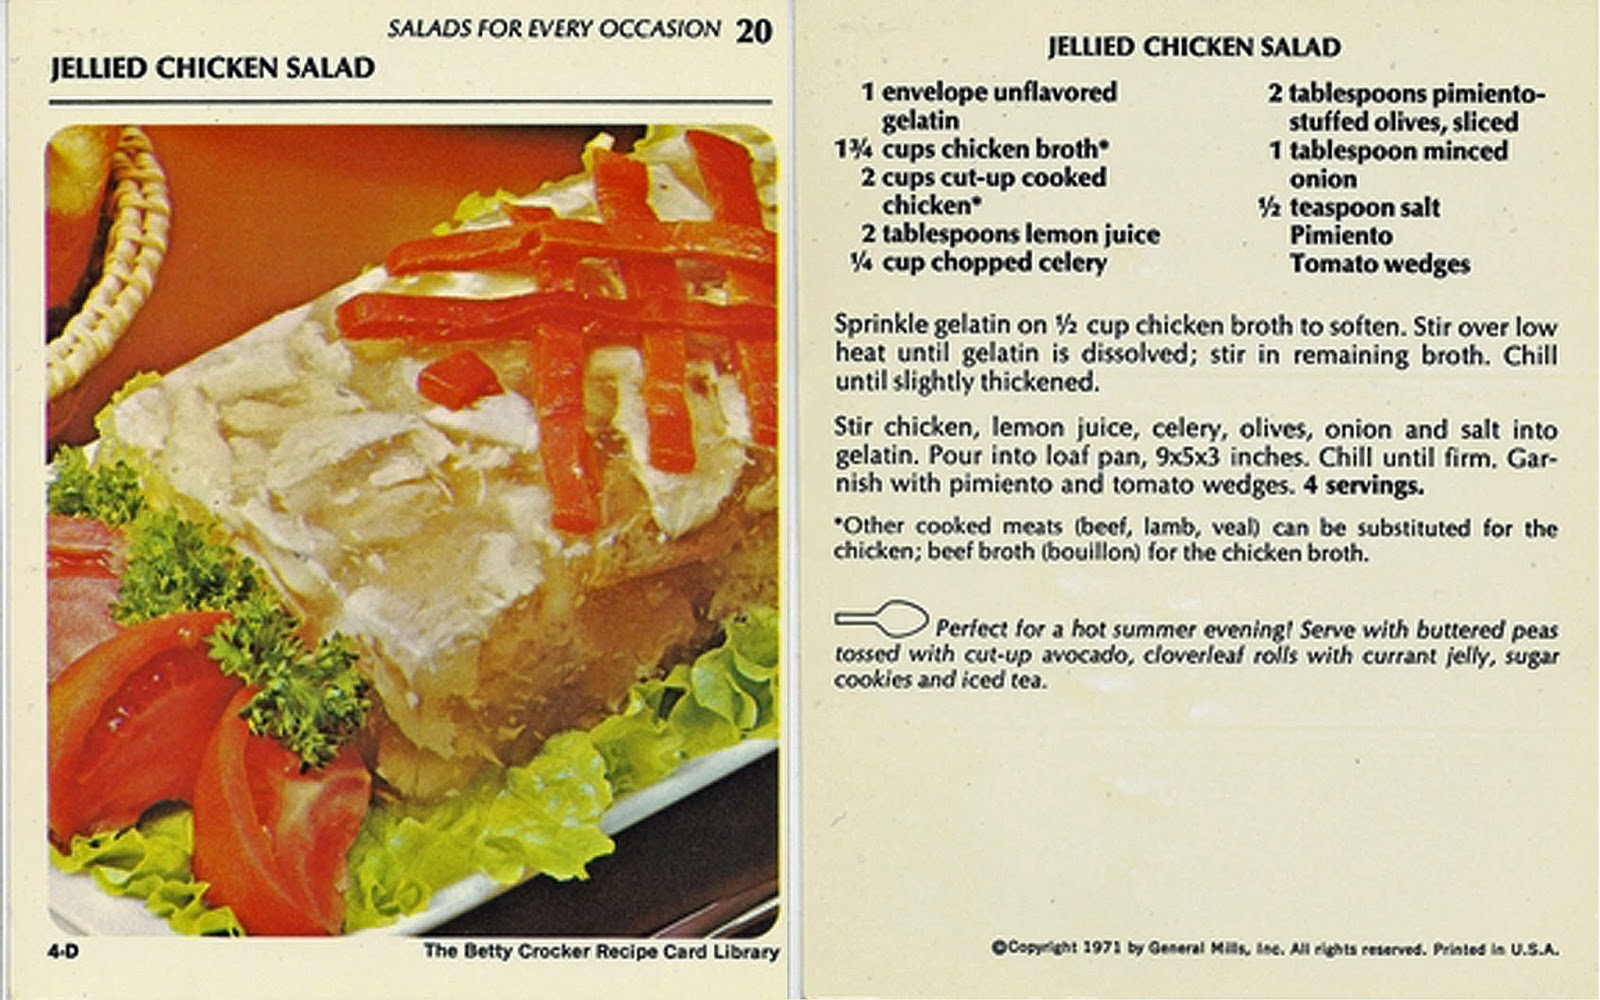 Chicken salad with gelatin: recipes